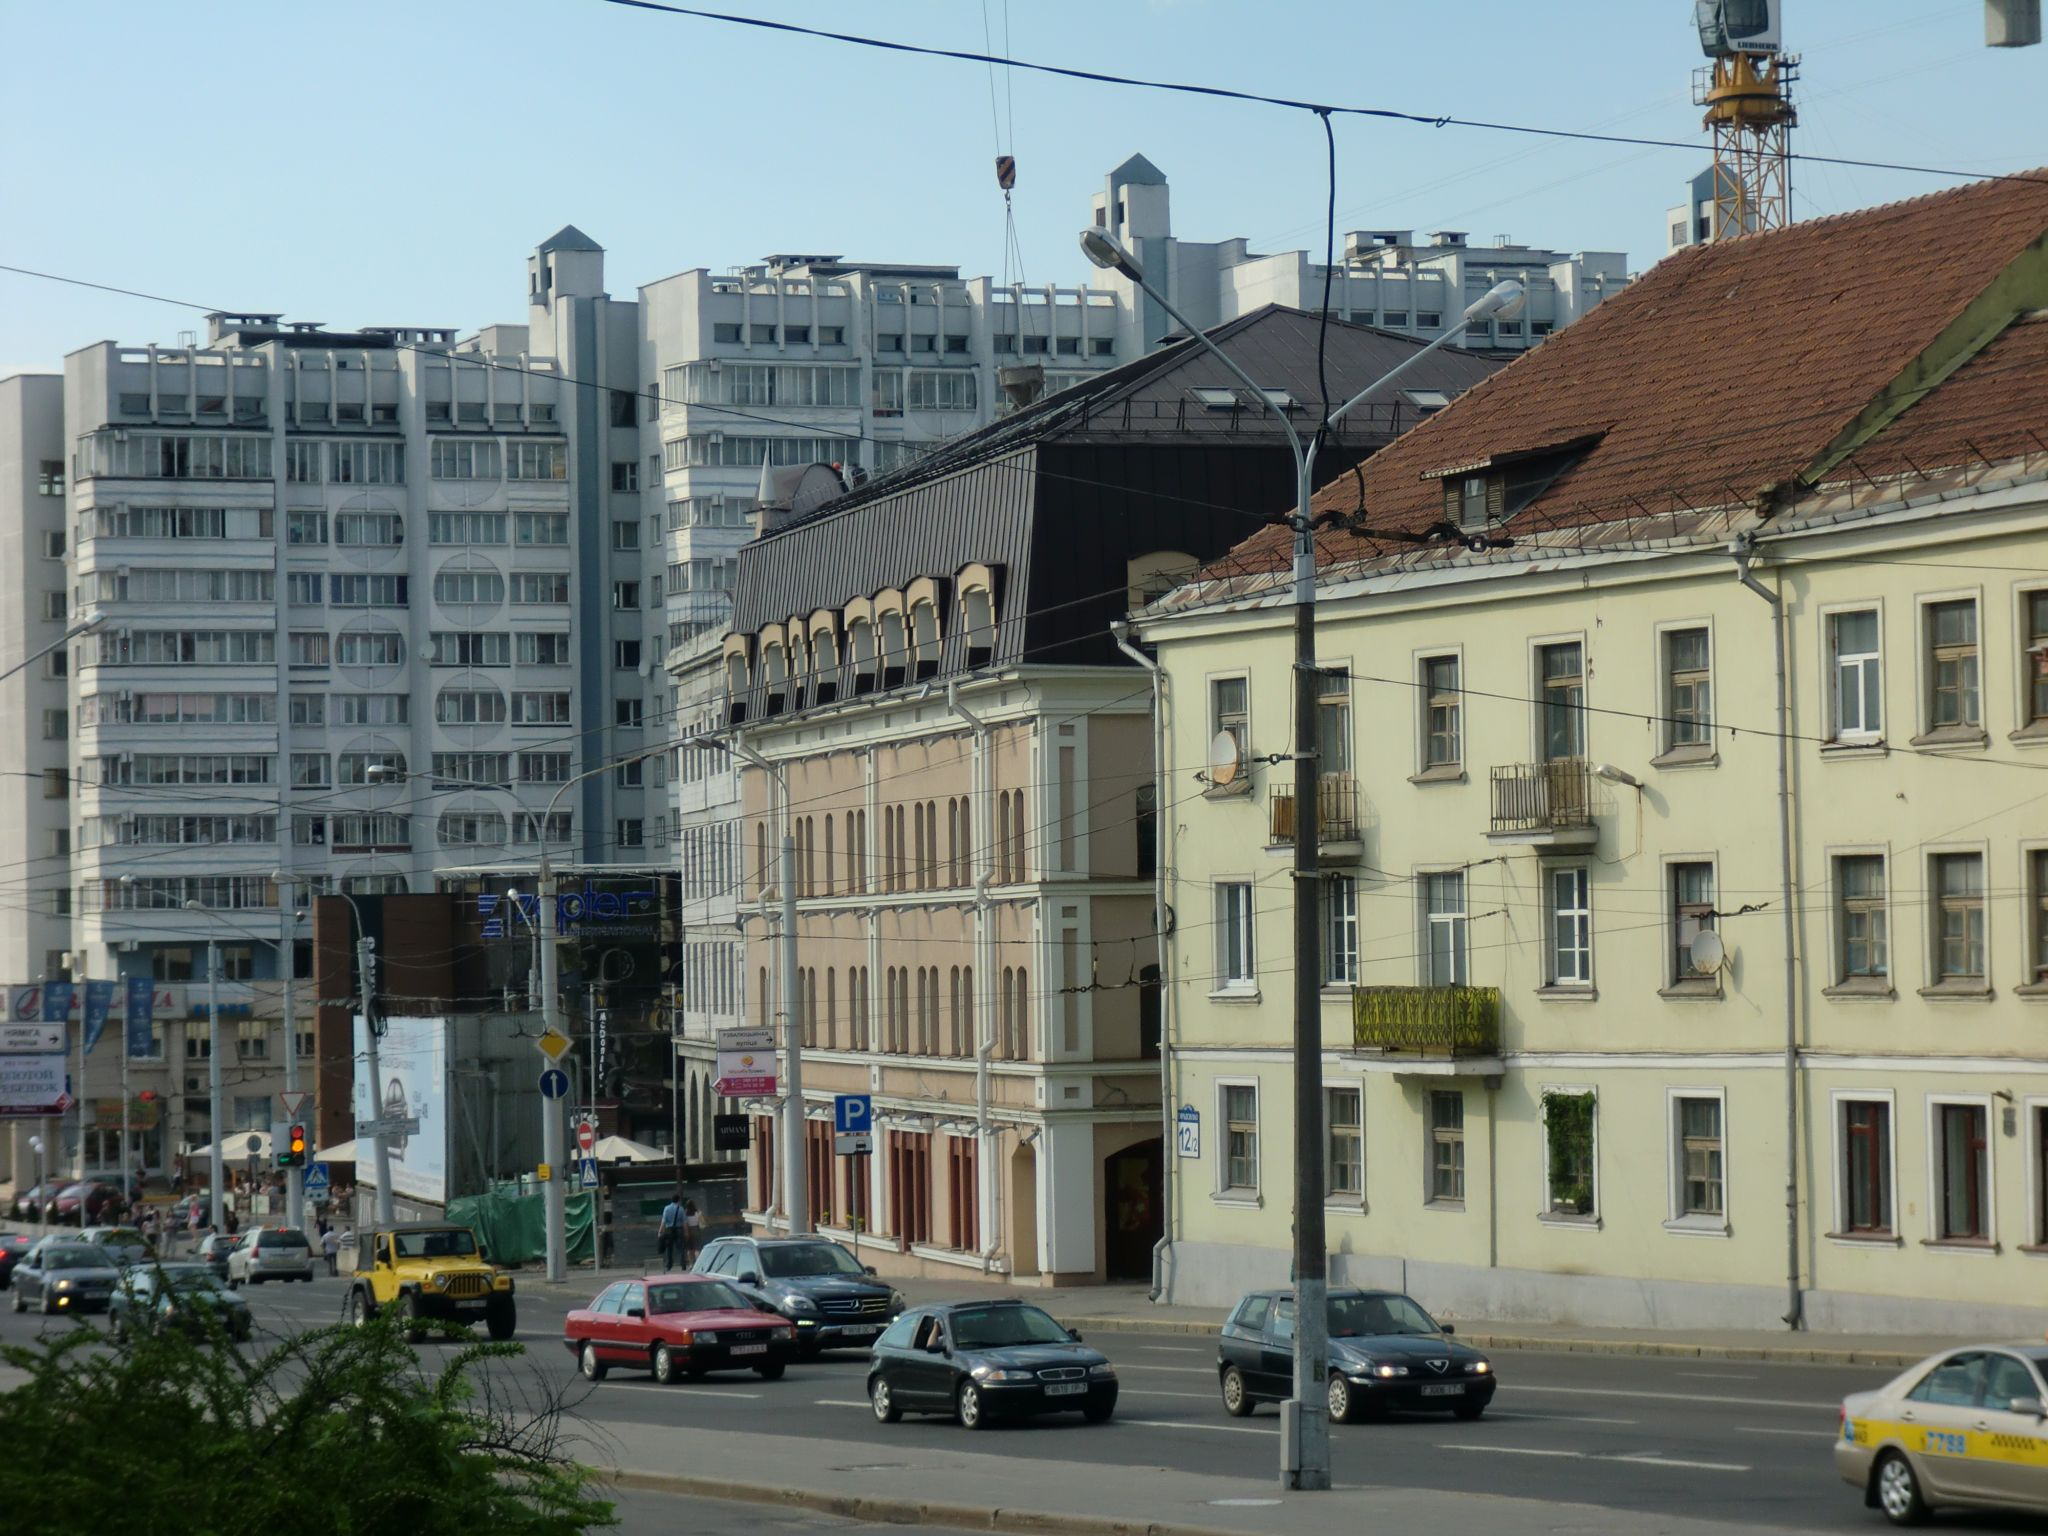 Minsk city 6 - Minsk, 1 amazing city you have to see